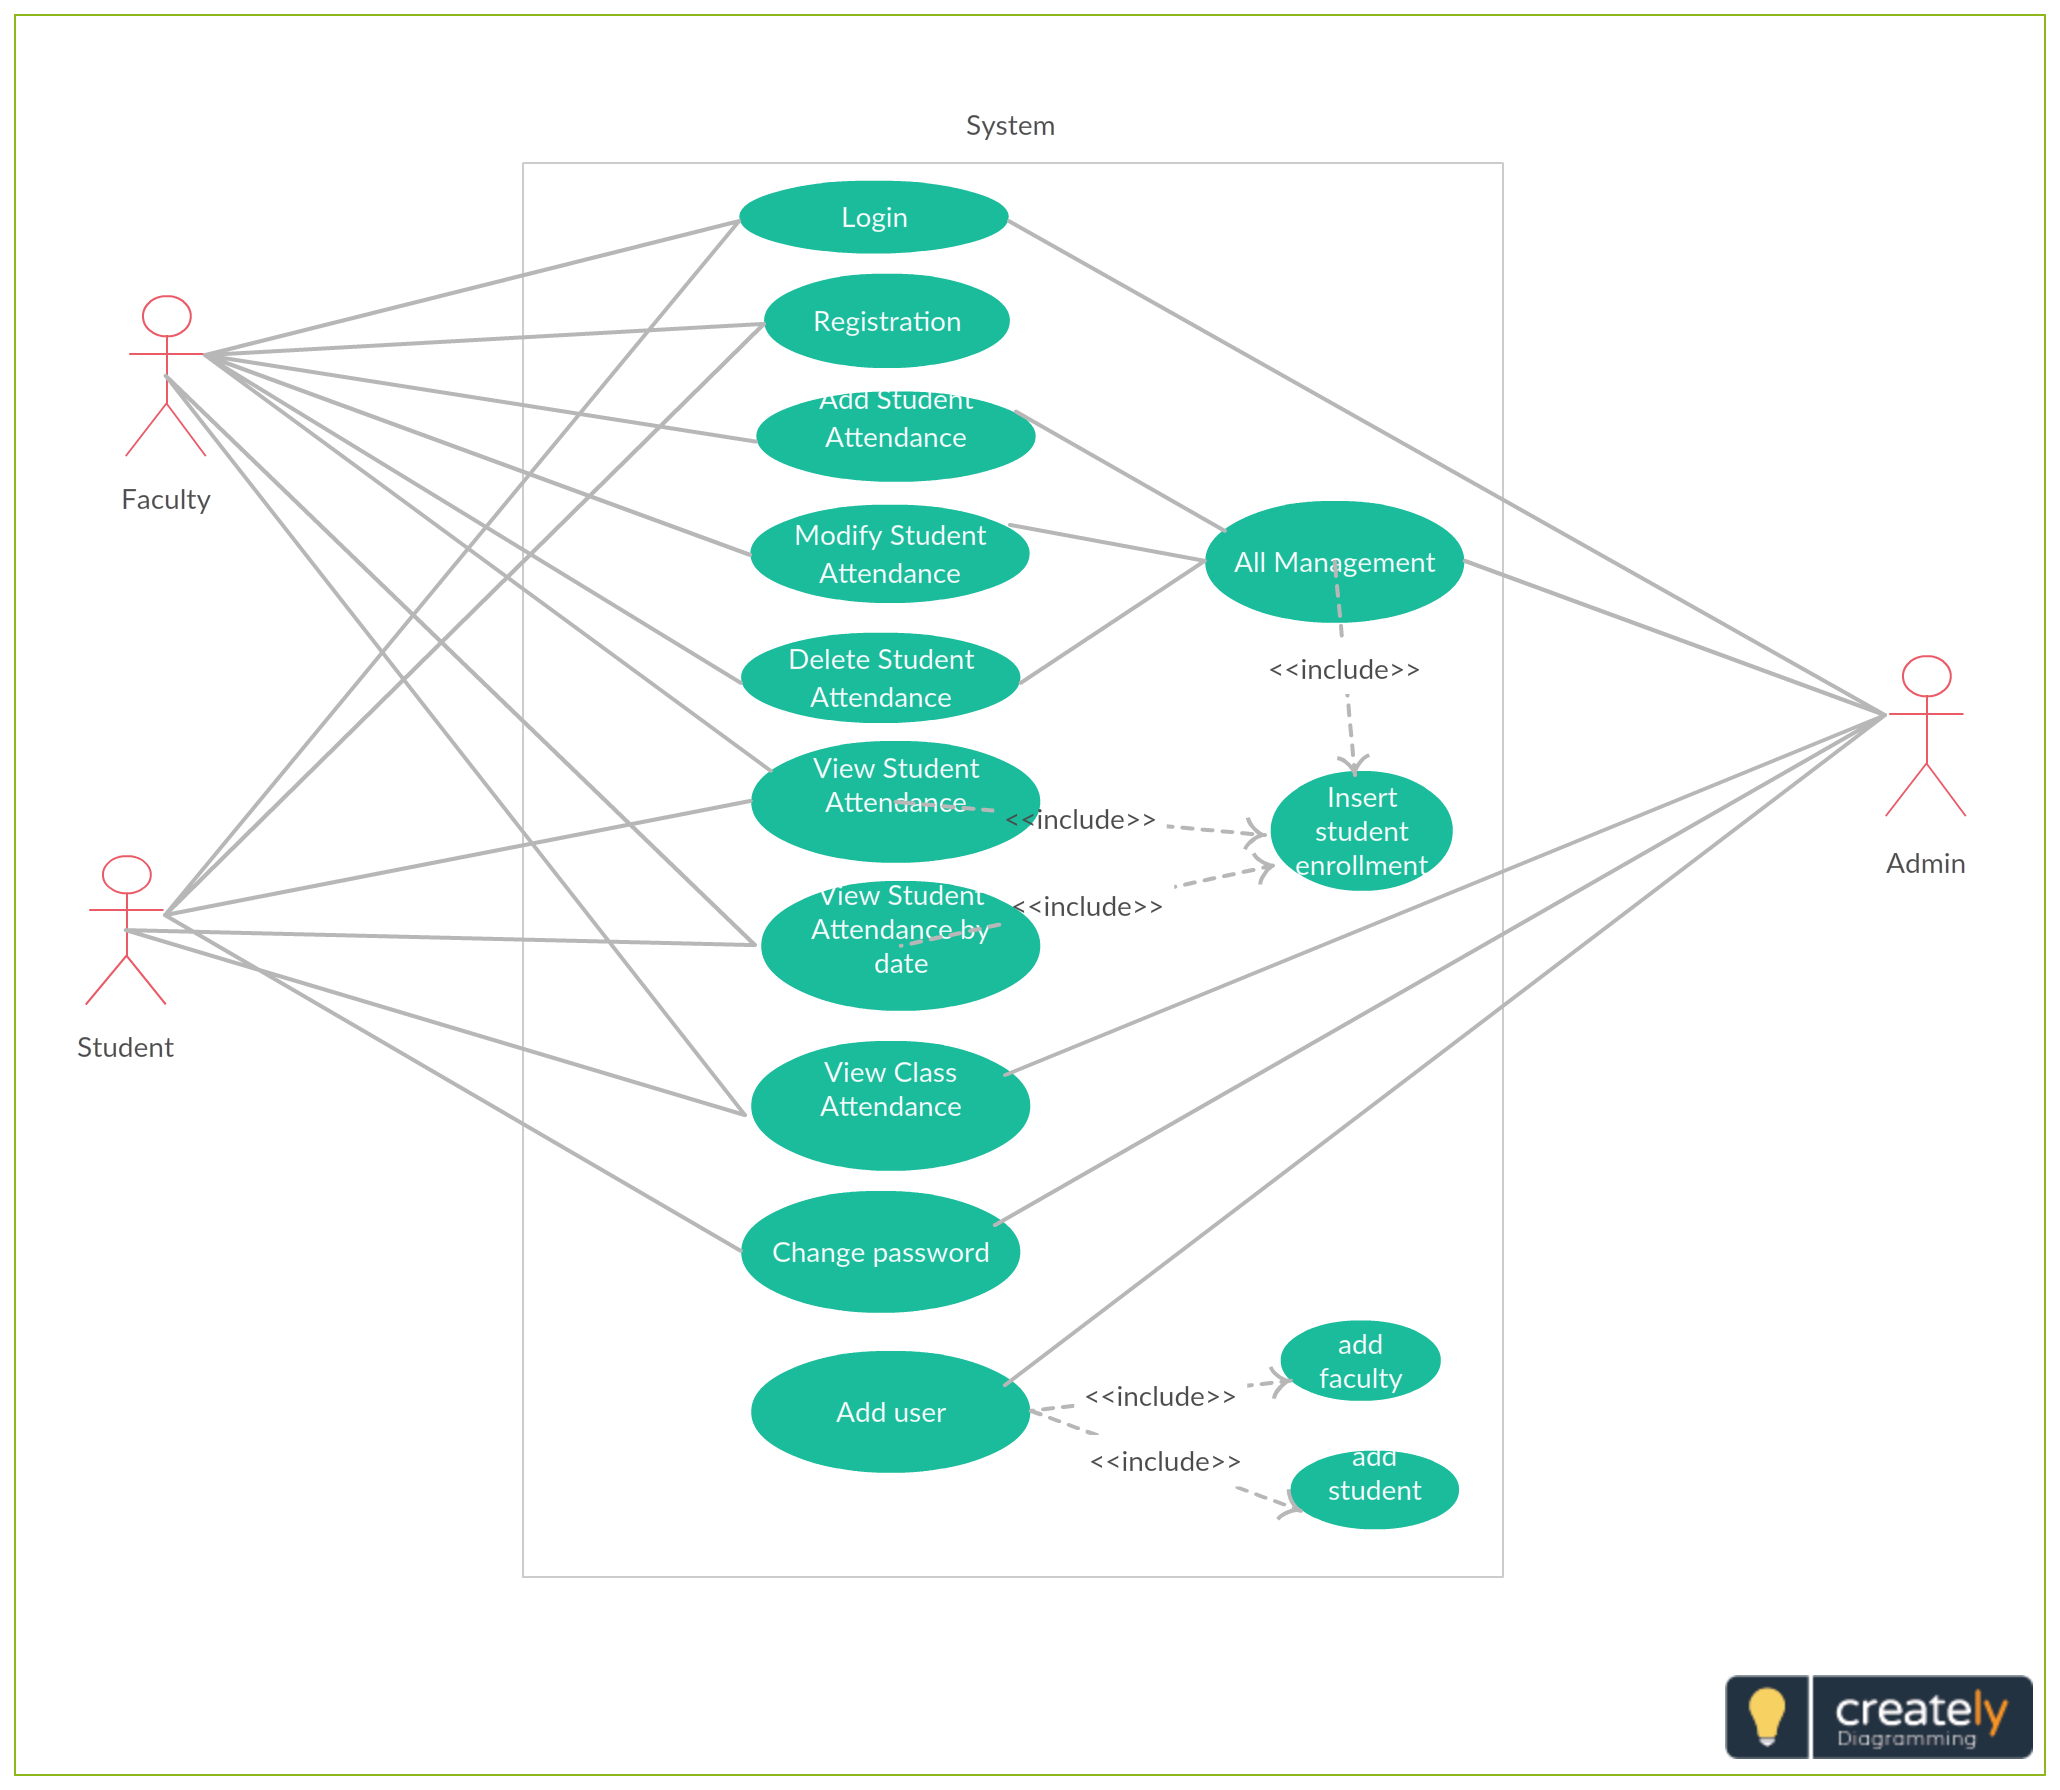 The Use Case Diagram Are Usually Referred To As Behavior Diagram Used To Describe The Actions Of All User In A System A School Management Use Case Process Map